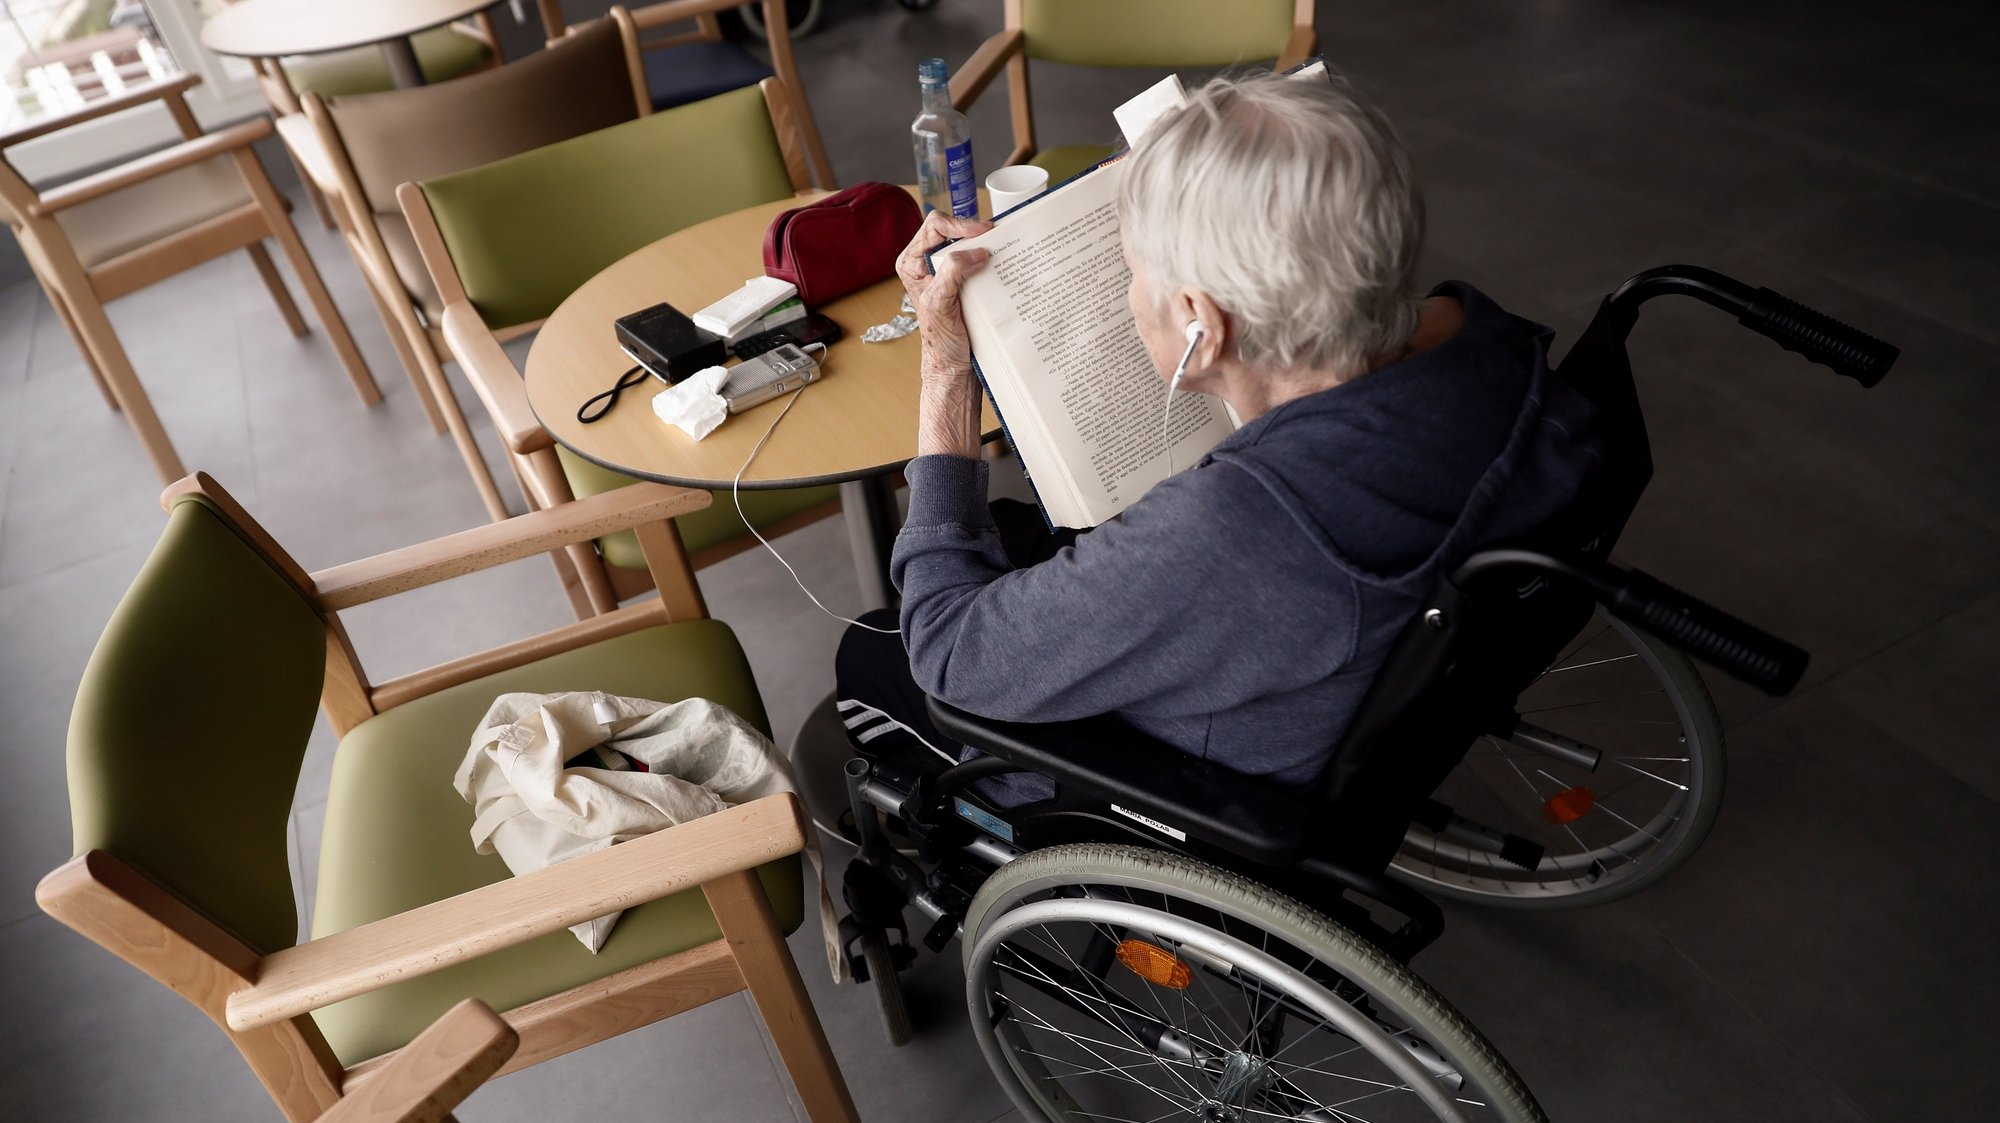 epaselect epa08356843 A resident sits in a wheelchair while reading a Spanish translation of the popular book 'The Adventures of Sherlock Holmes' by Sir Arthur Conan Doyle in a common area of the Casablanca retirement home in the working-class district of Villaverde, Madrid, Spain, 11 April 2020. Despite almost all countries adopting specific measures to protect nursing homes from the ongoing pandemic of the COVID-19 disease caused by the SARS-CoV-2 coronavirus, they have become one of the main foci of infection, with their elderly residents constituting the main at-risk group that is especially vulnerable to the virus' devastating spread. Retirement homes across Spain are recording some of the highest figures when it comes to COVID-19 infections and mortality rates.  EPA/MARISCAL